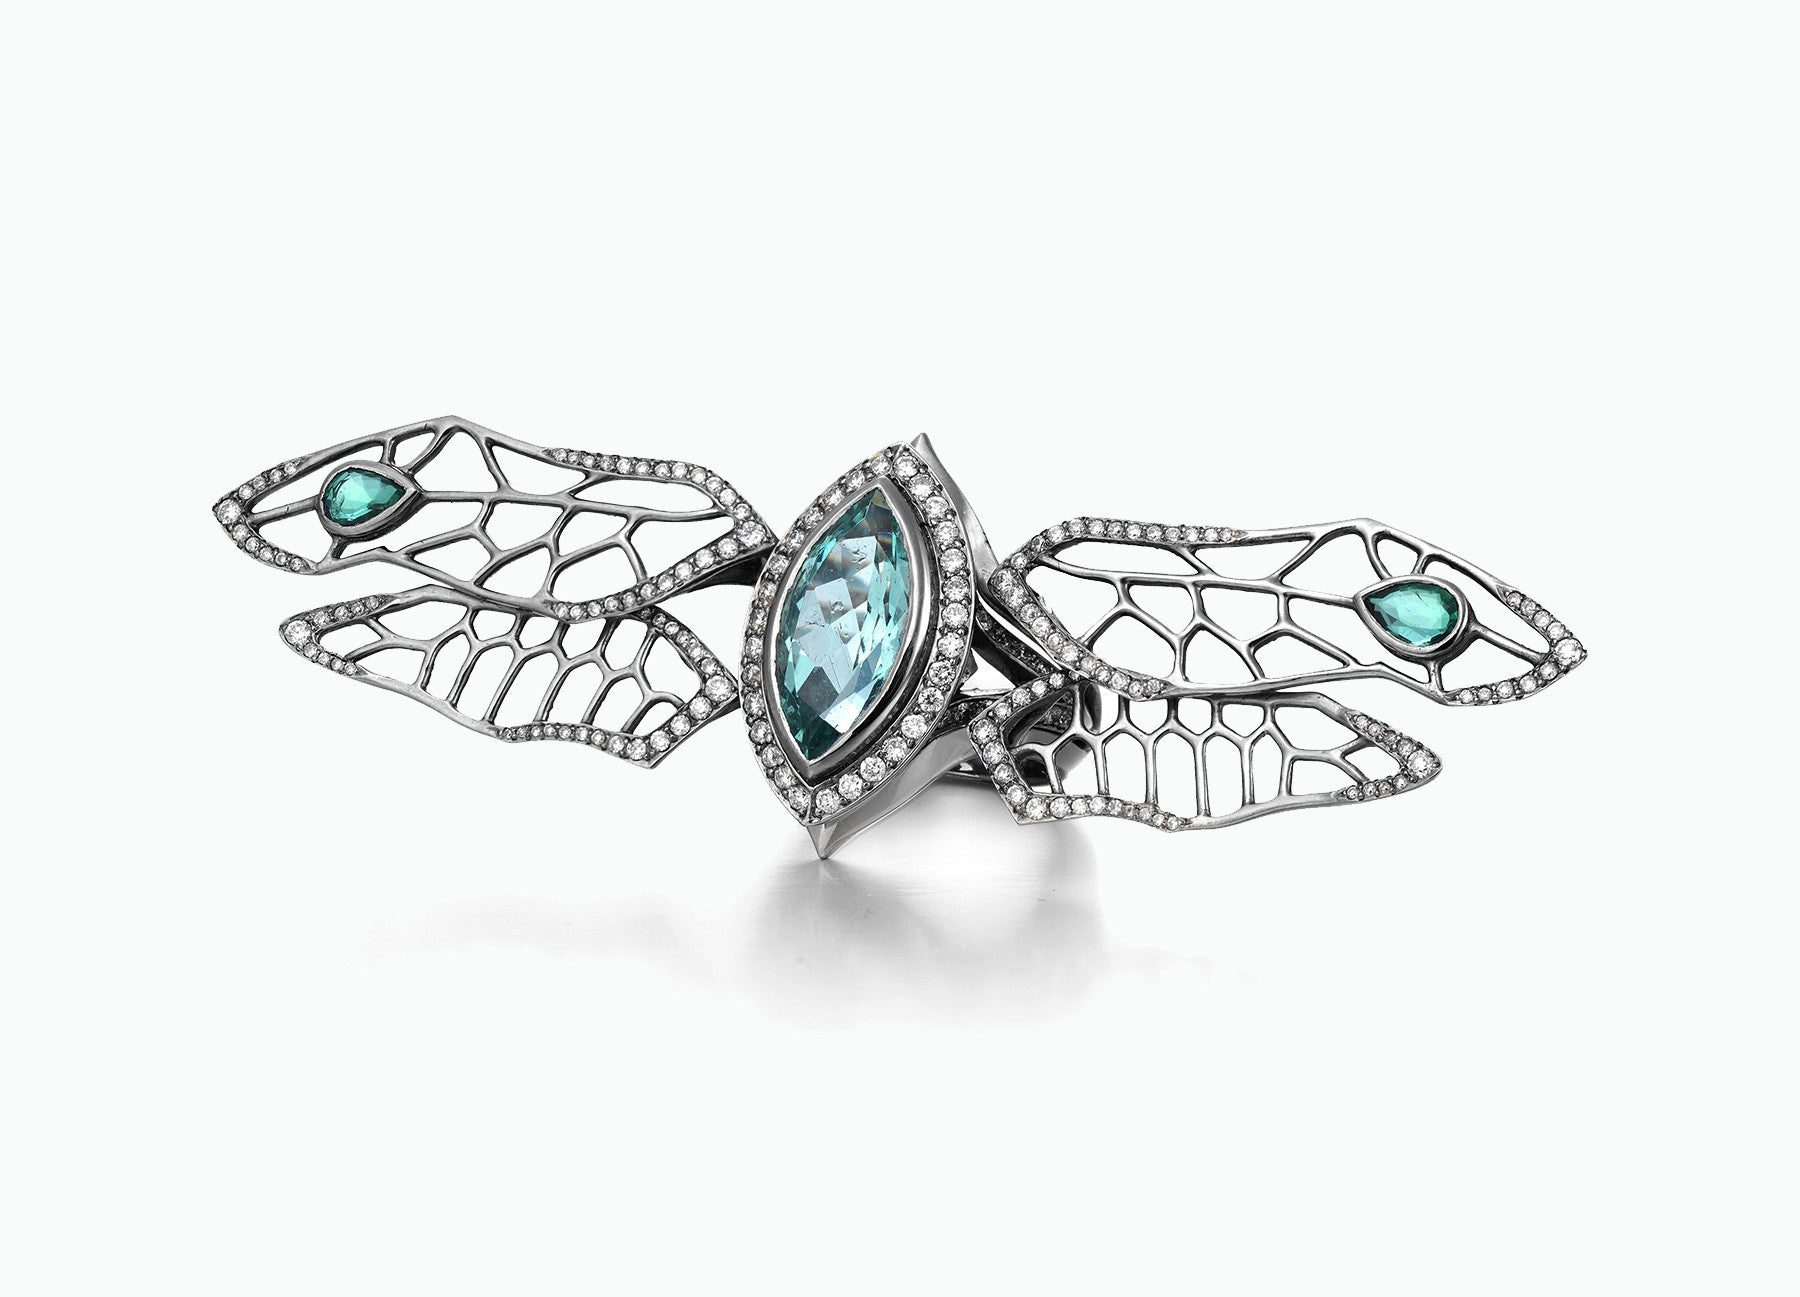 bridal rings accent petite jewelry dragonfly shipping blue overstock suzy sterling product free sapphire levian engagement watches silver ring diamond today